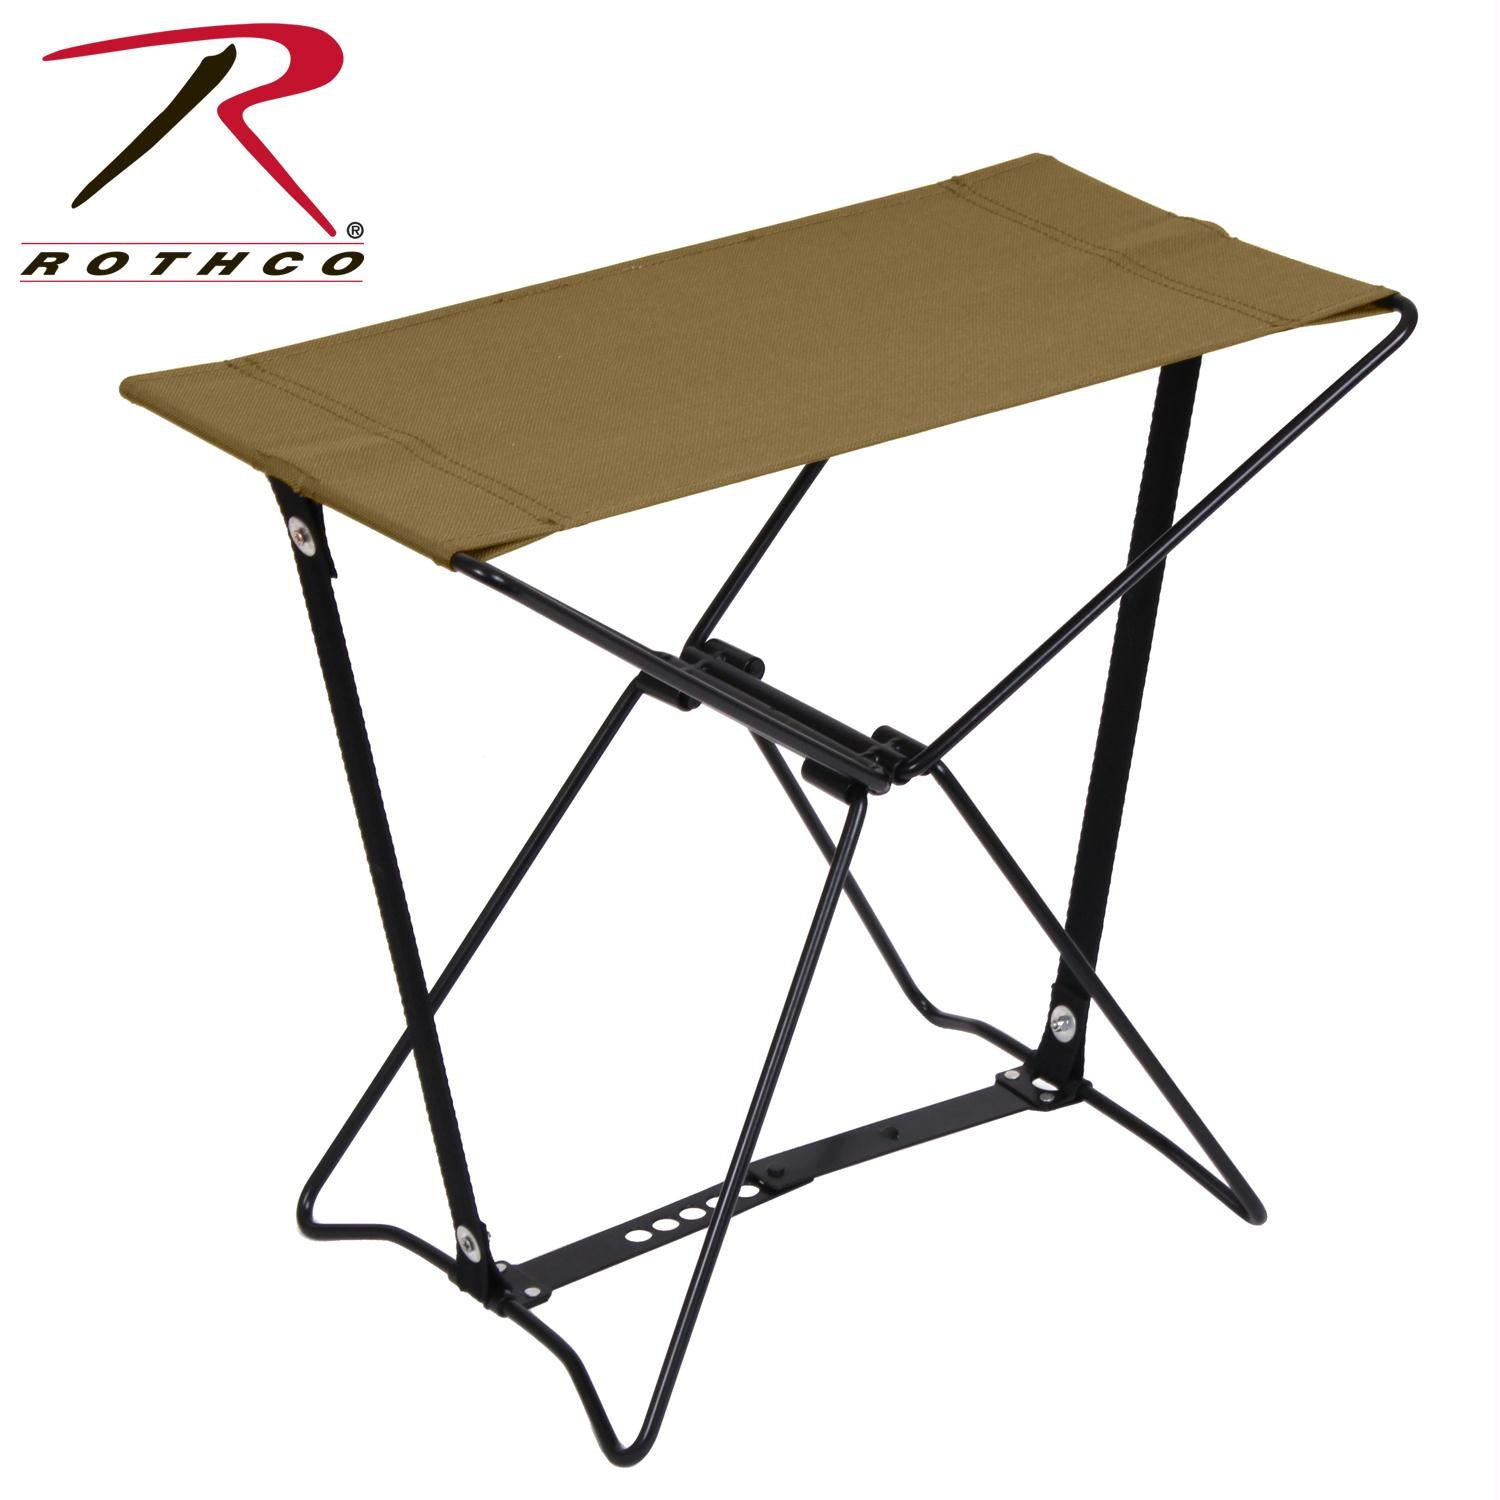 Rothco Folding Camp Stools - Coyote Brown